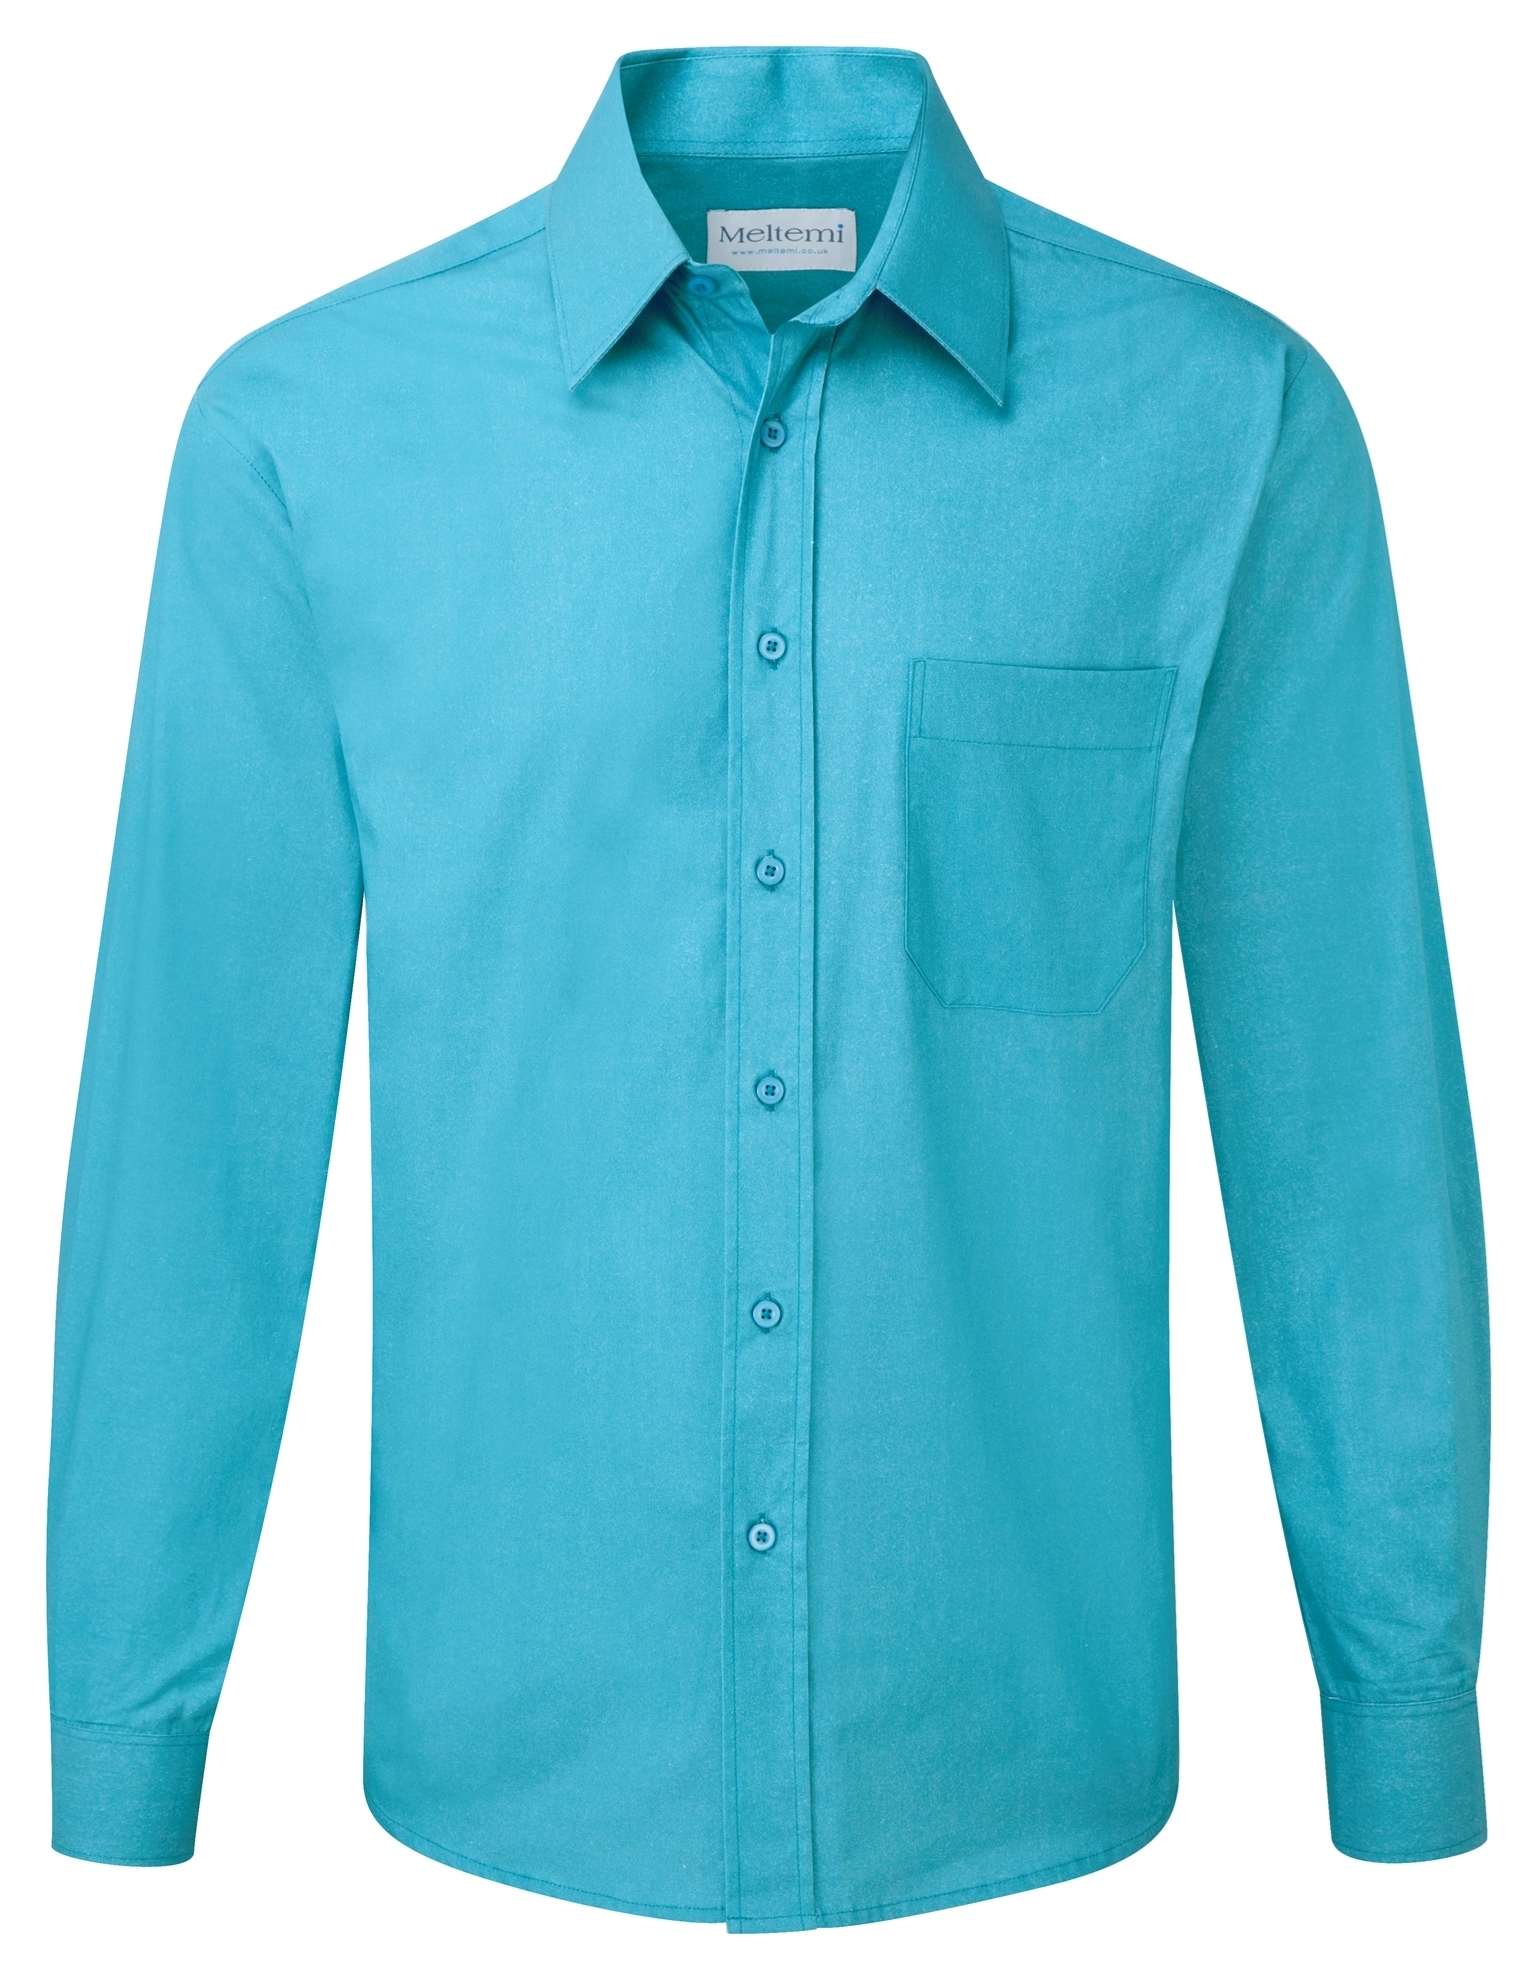 Picture of Male Long Sleeve Shirt - Plain Teal